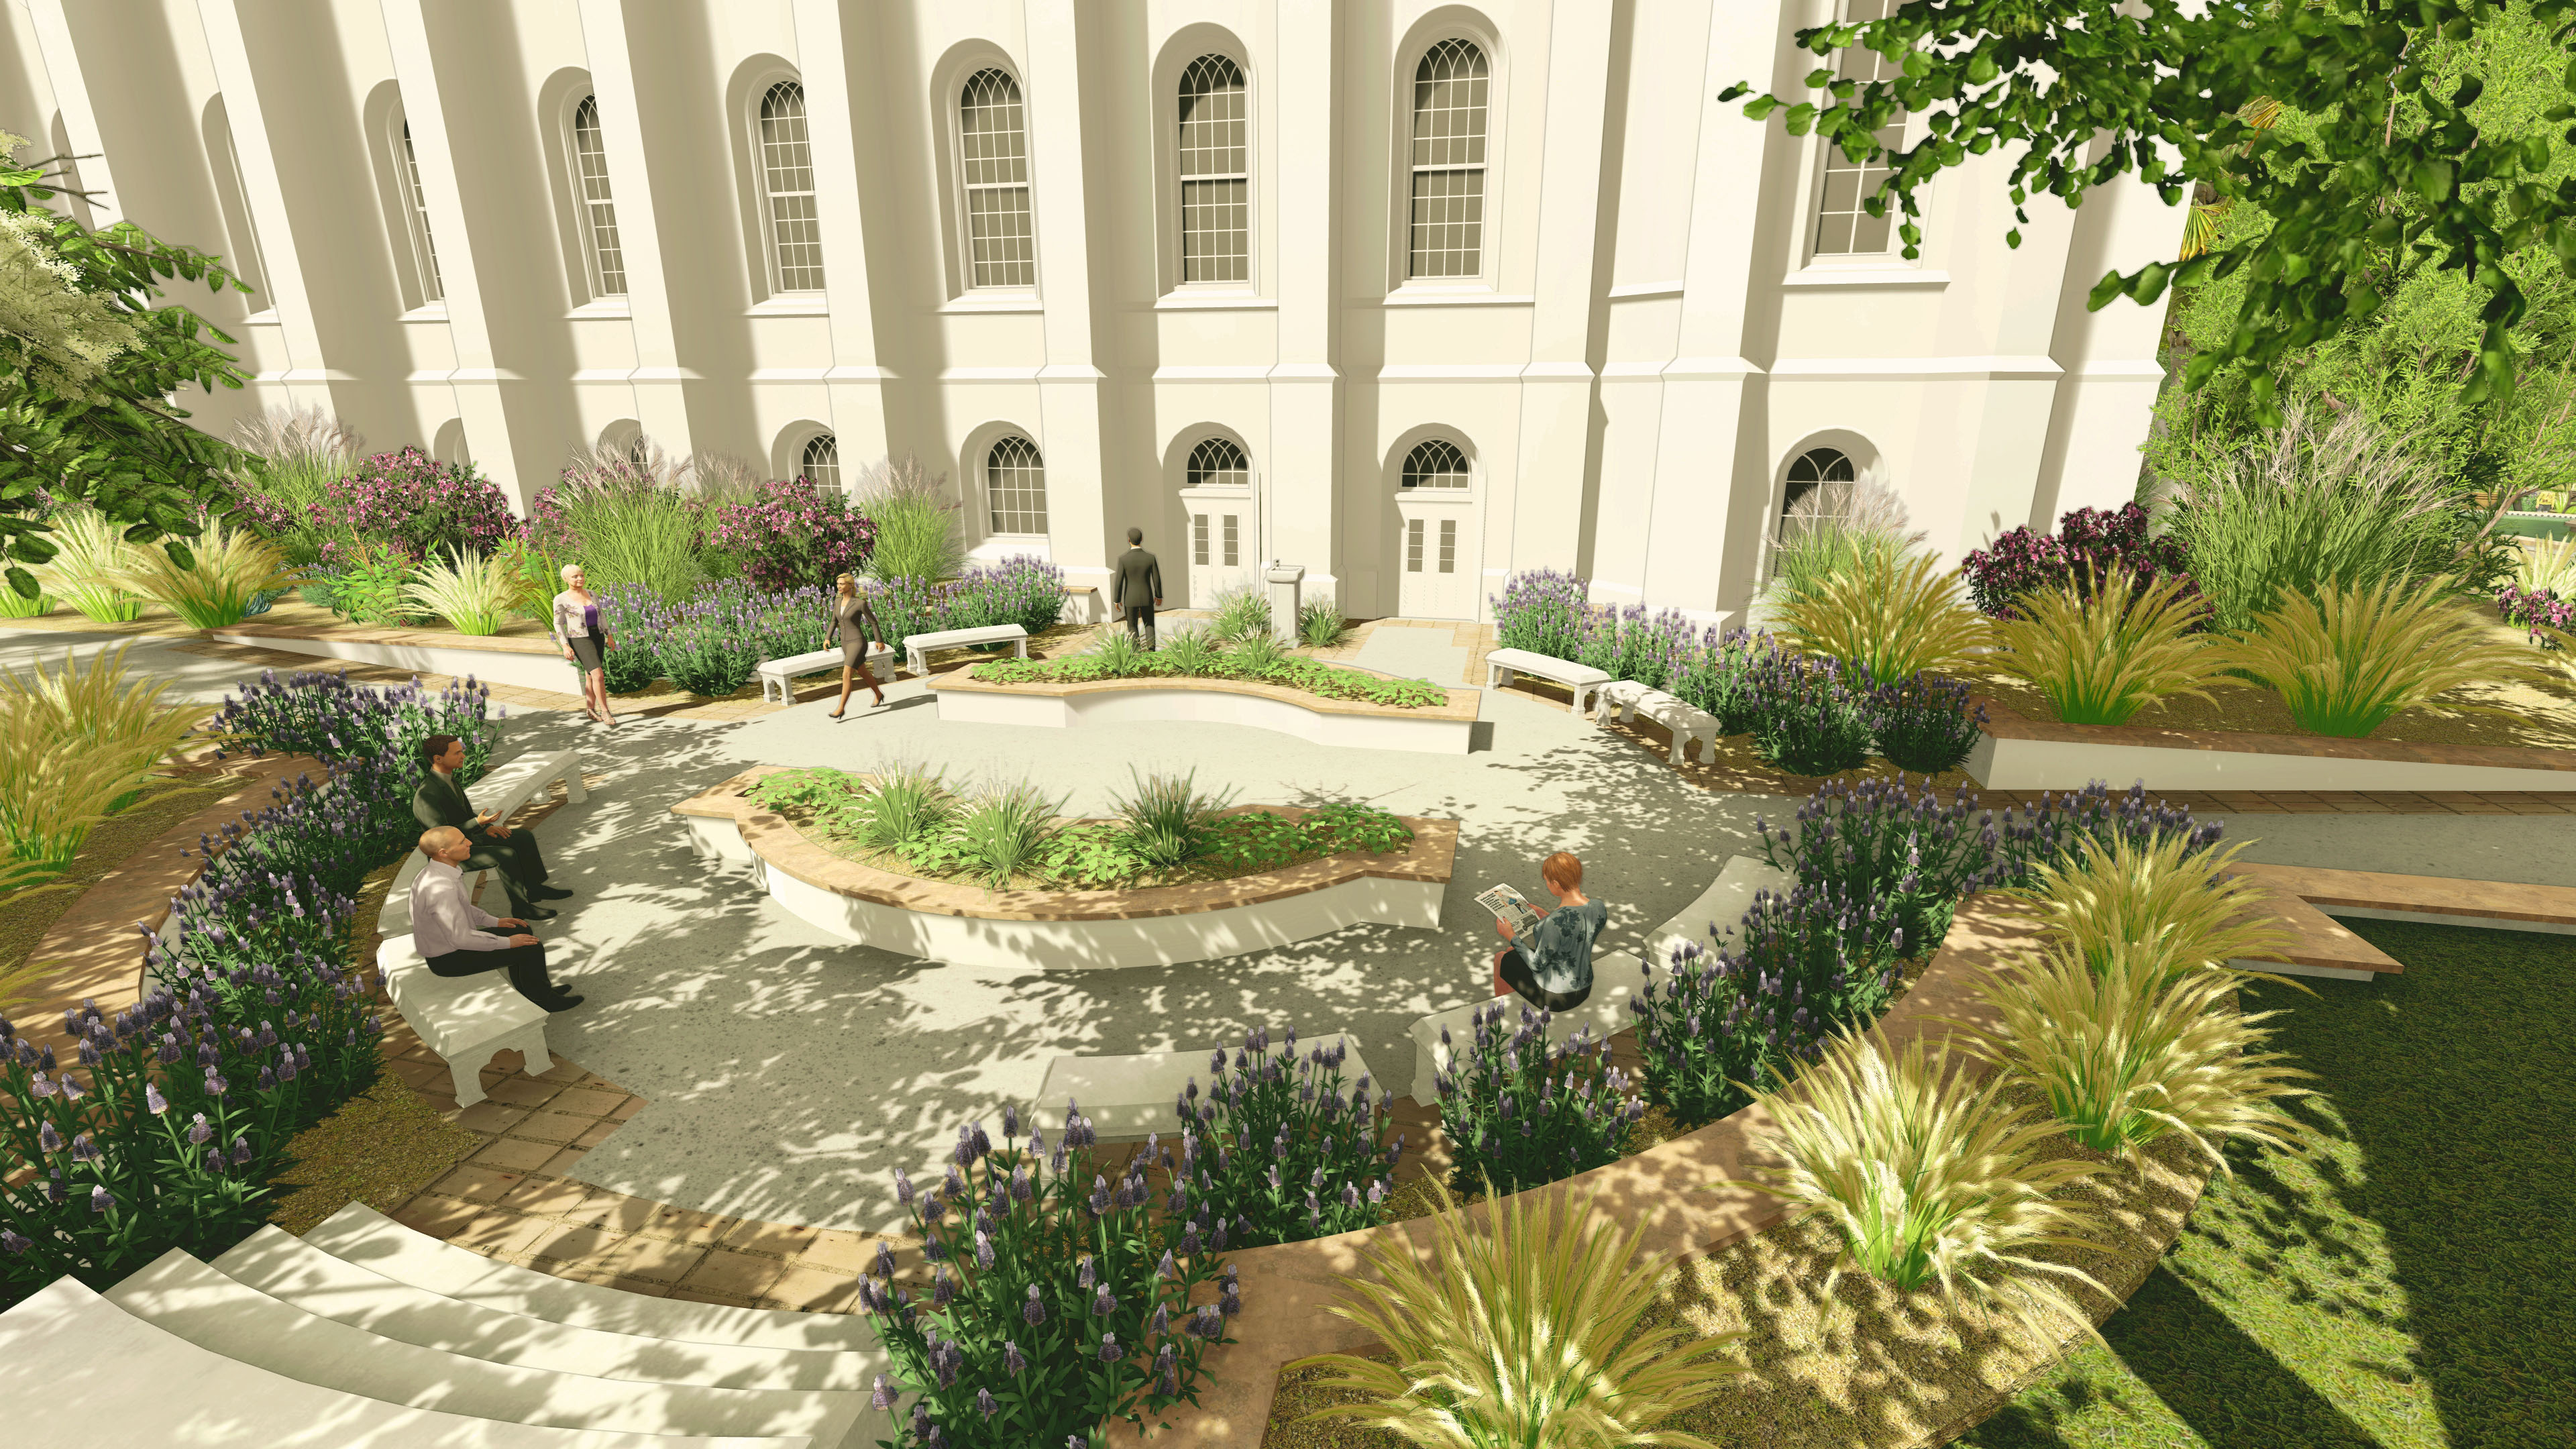 Rendering of the baptistry exit plaza at the St. George Utah Temple. The temple will close Nov. 4 for extensive renovations.